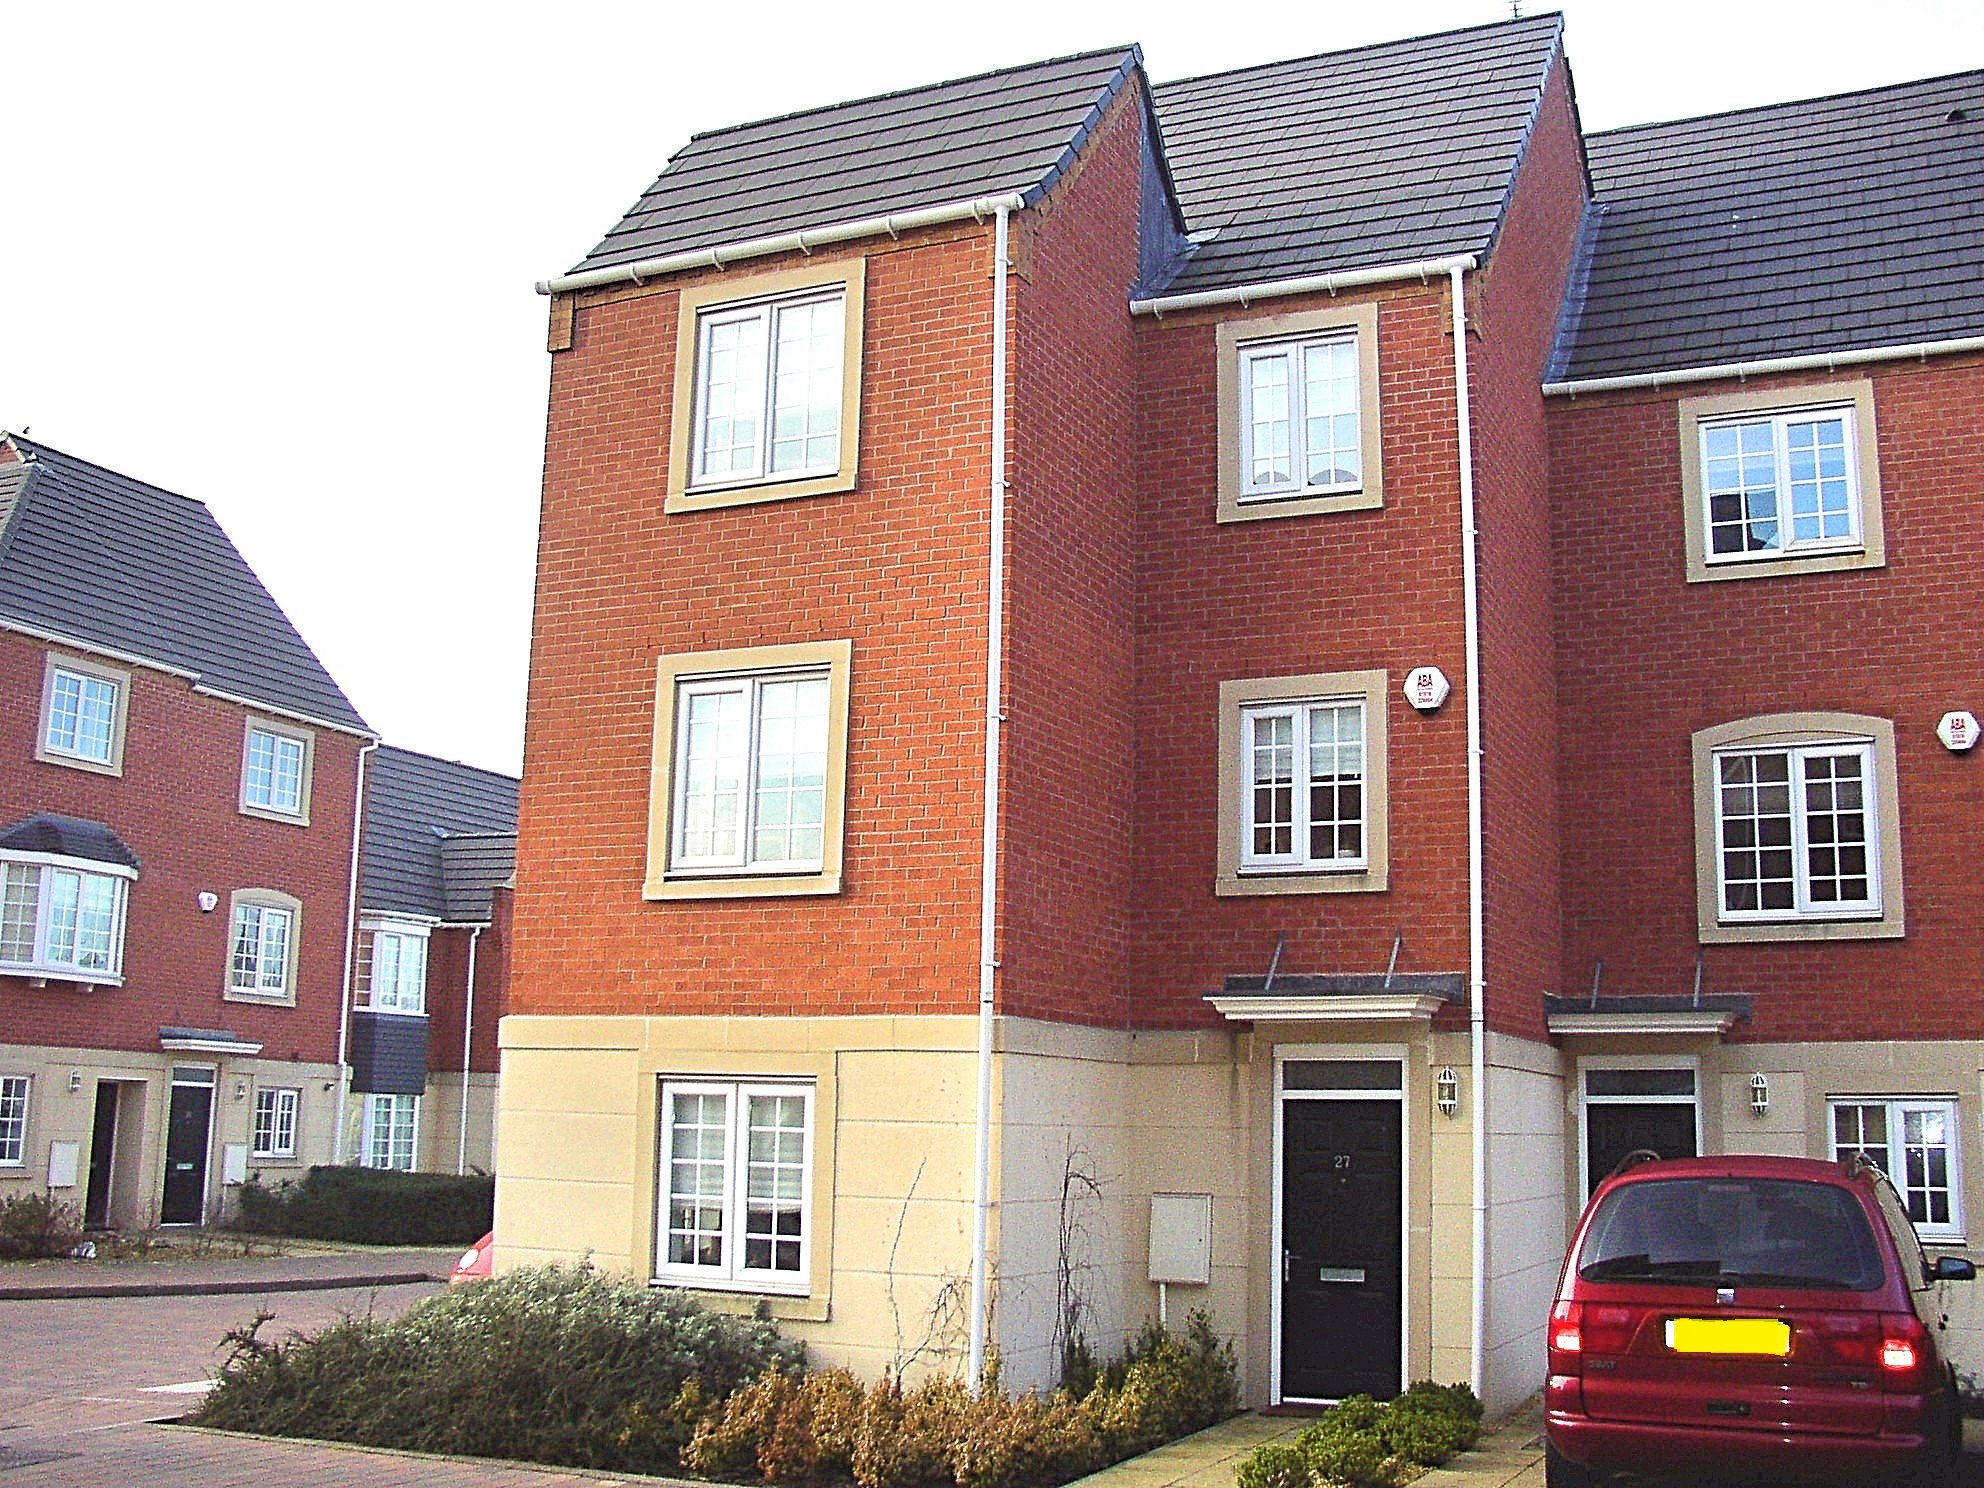 Is 747 A Good Credit Score >> 3 bedroom end of terrace house for sale, Madison Avenue, Brierley Hill, DY5 1TZ